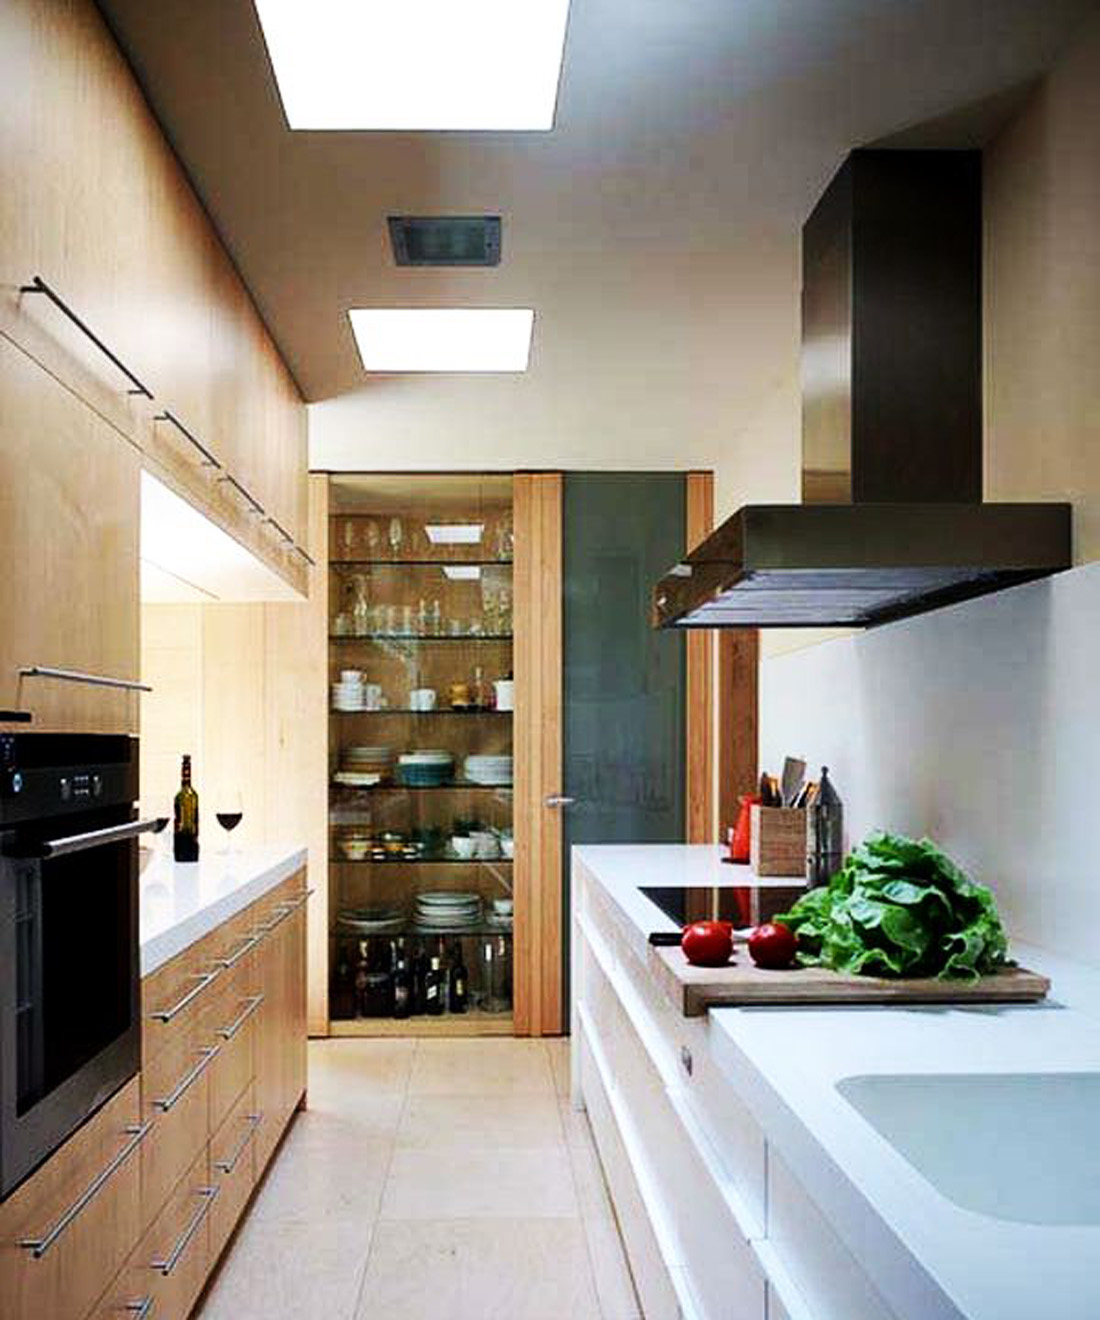 25 modern small kitchen design ideas Kitchen design ideas for small galley kitchens